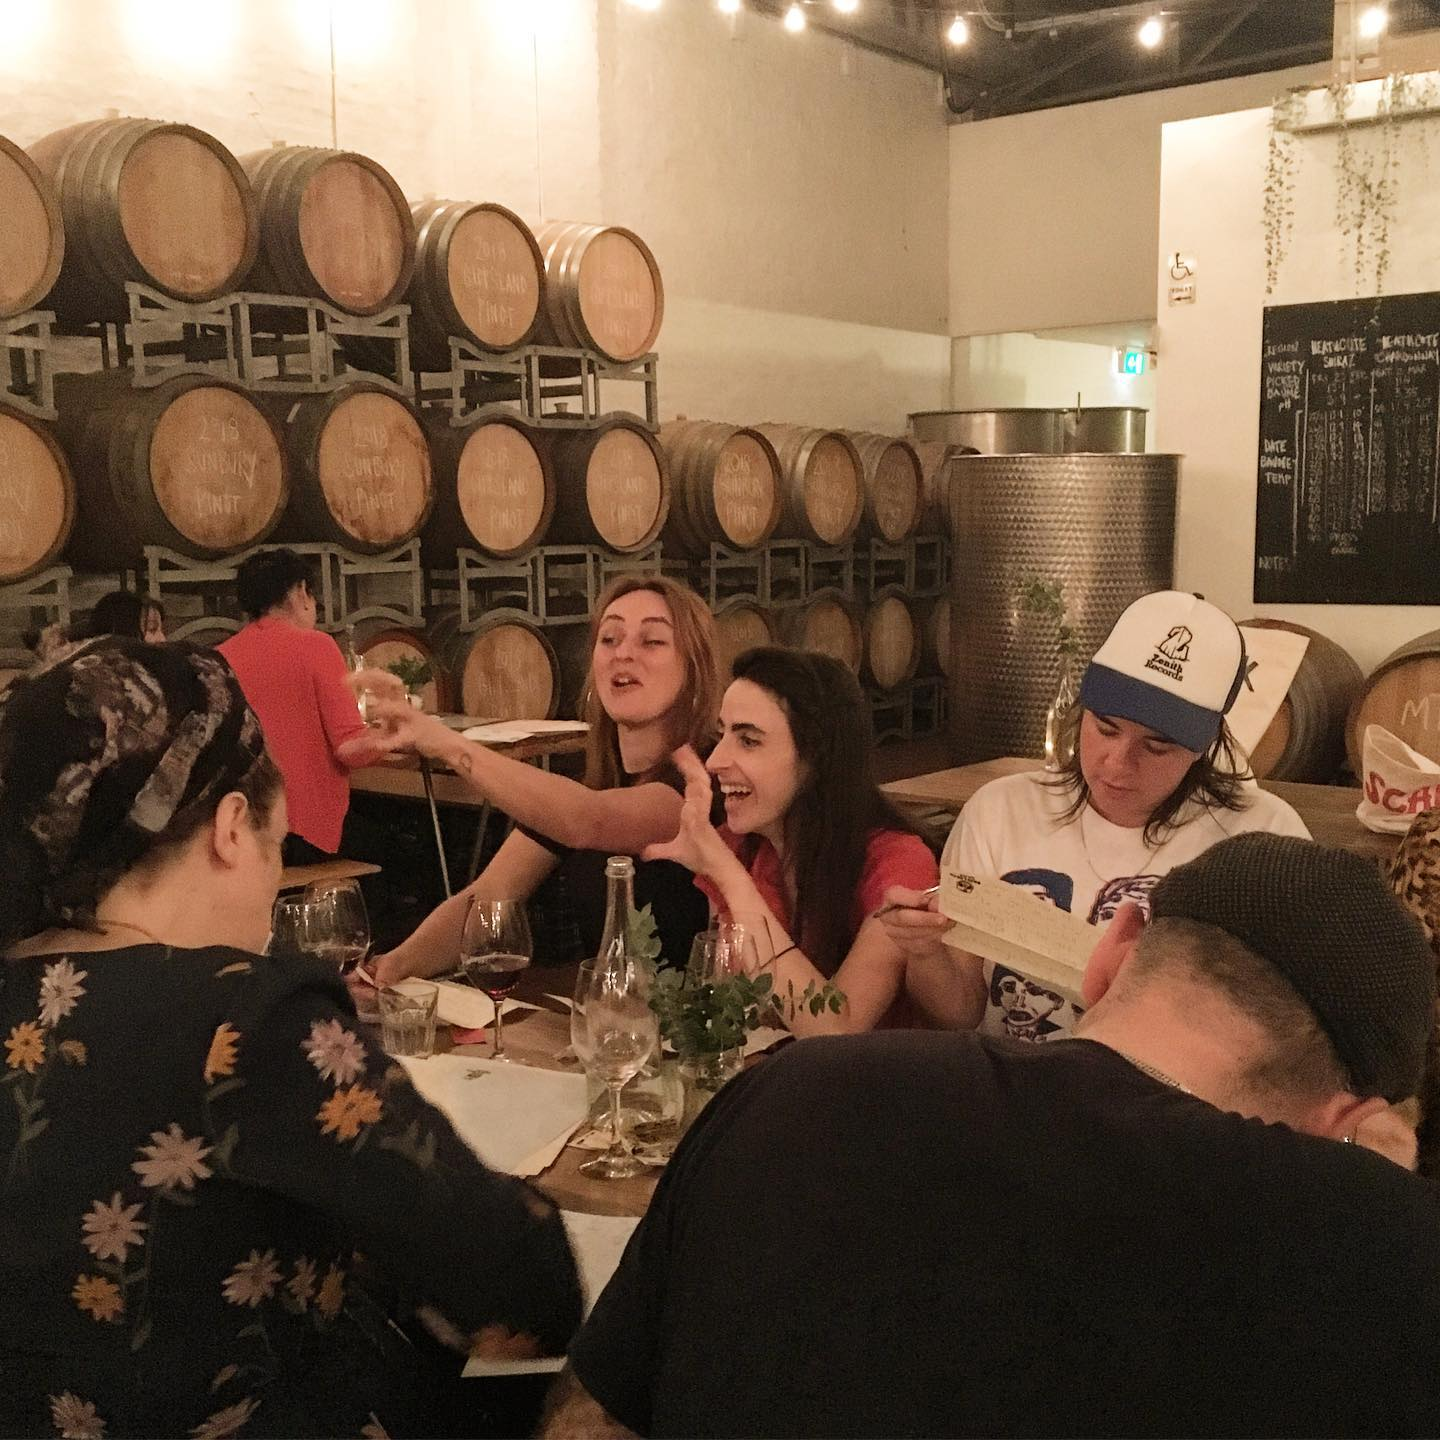 People laughing and sharing food and wine while writing at the Dead Letter Club event